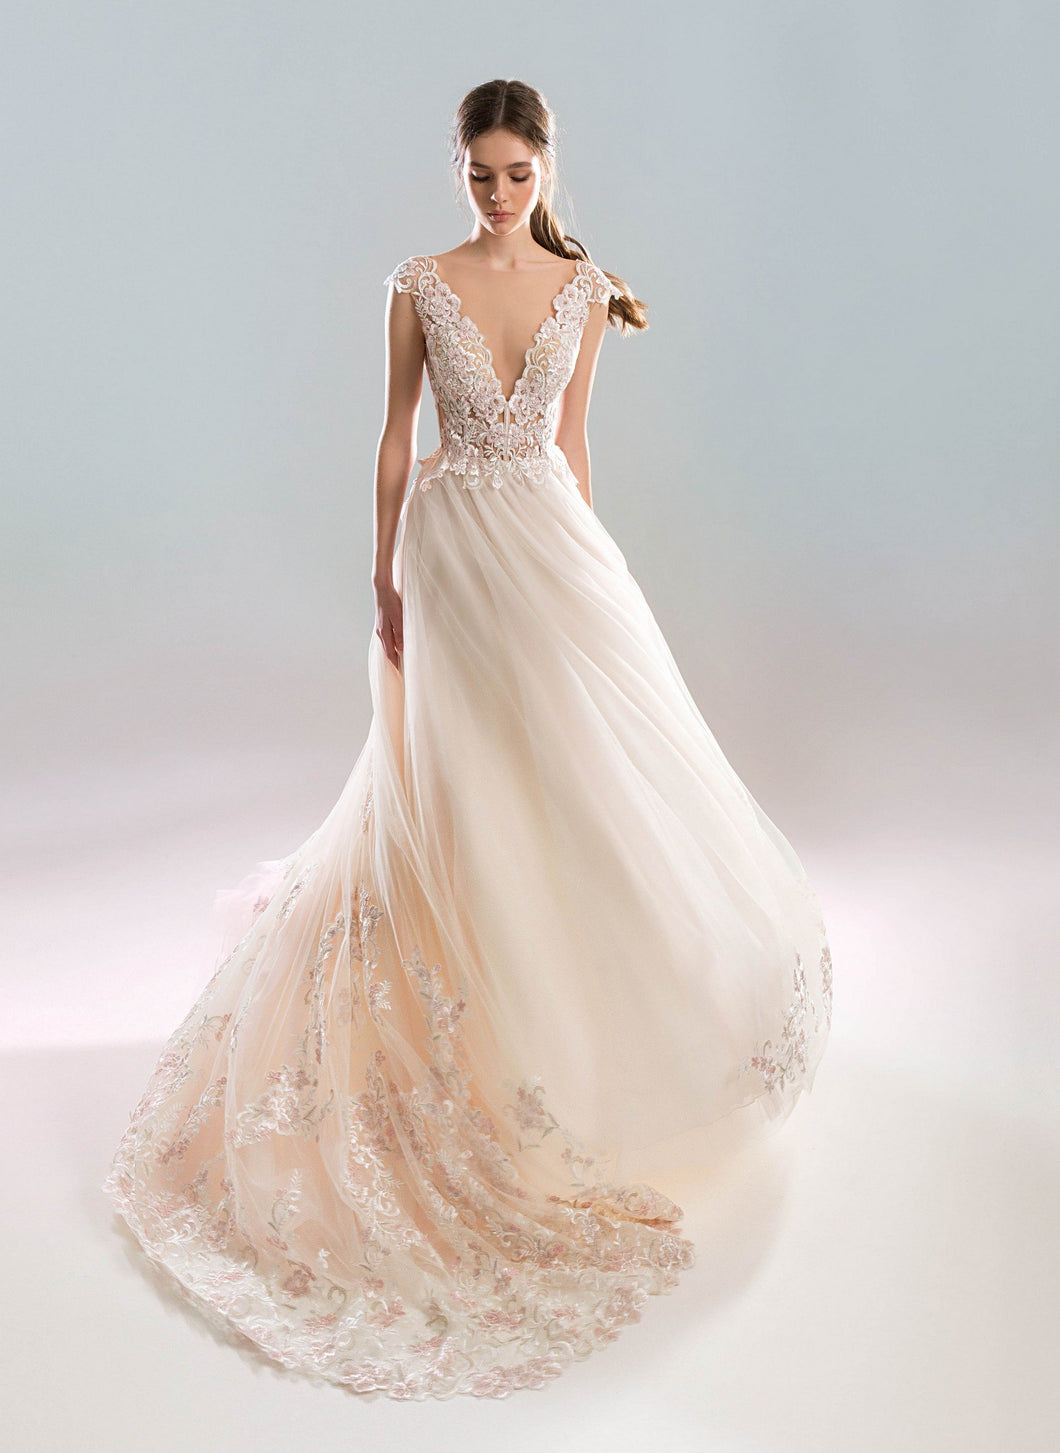 White Wind 'Zephyr' Papilio Bridal RTW 1917L-370 Ready To Wear European Bridal Wedding Gown Designer Philippines